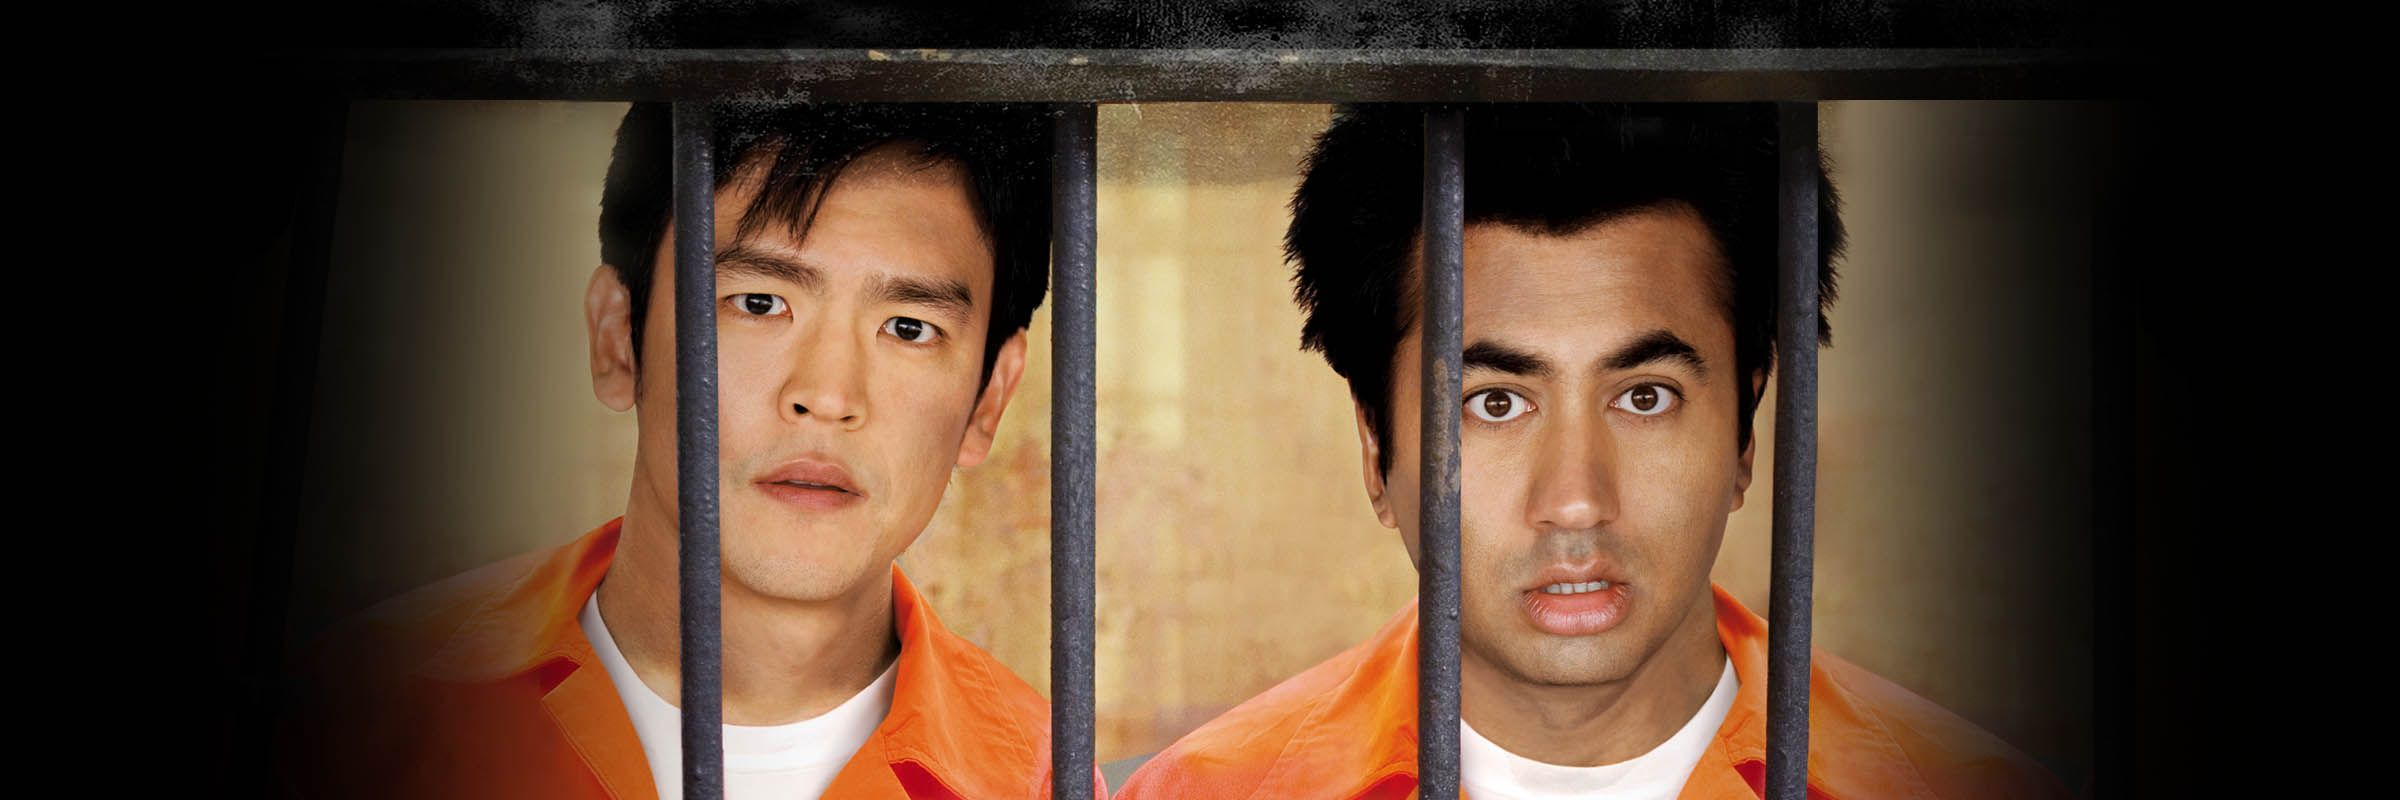 Harold And Kumar Escape From Guantanamo Bay Full Movie Free harold and kumar escape from guantanamo bay | full movie